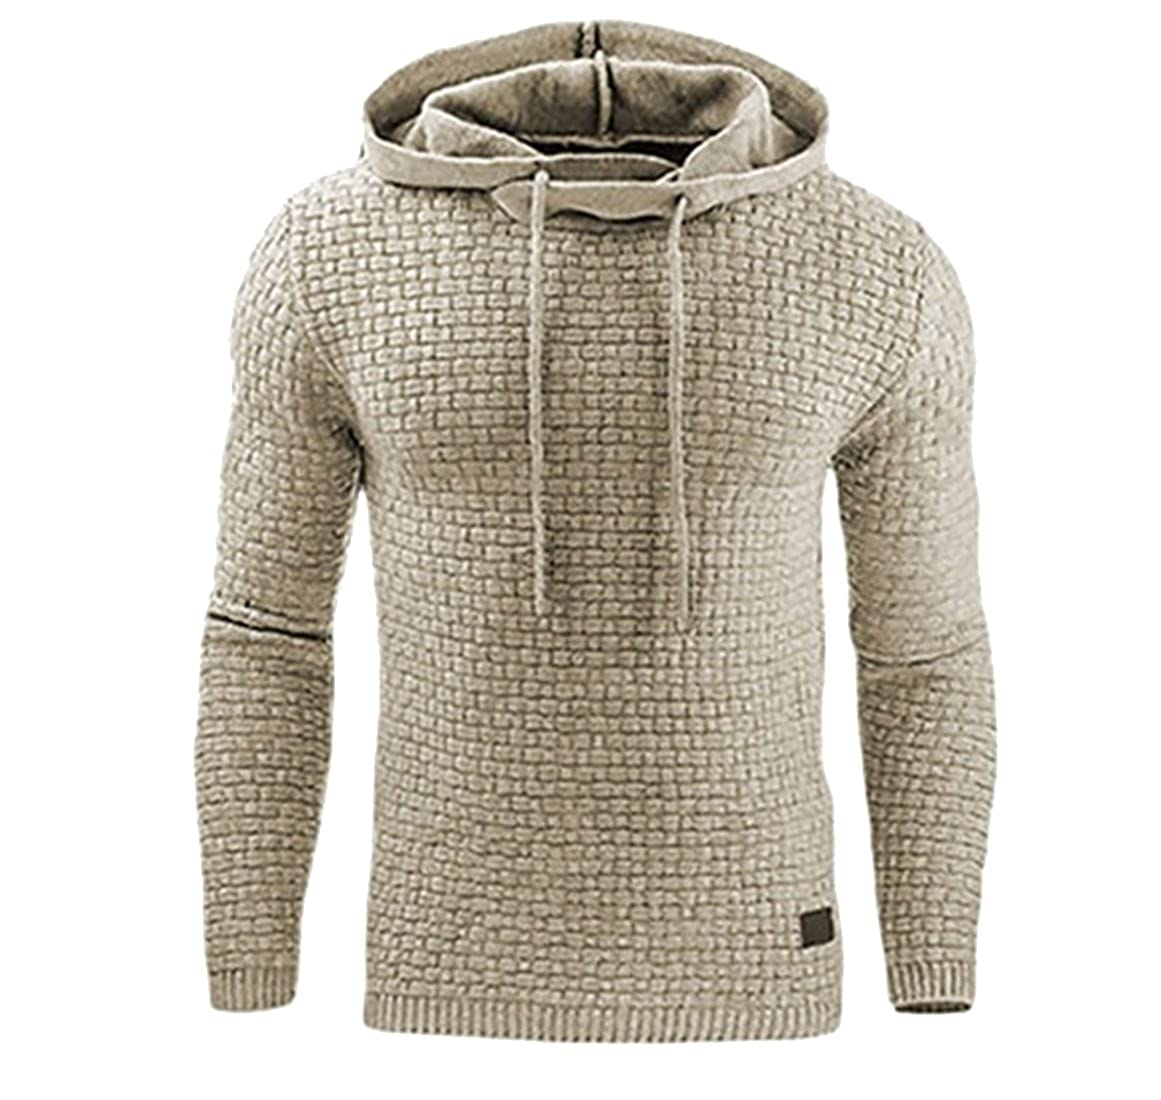 YYG Men Casual Active Solid Plus Size Slim Fit Knitted Pullover Hooded Sweatshirt